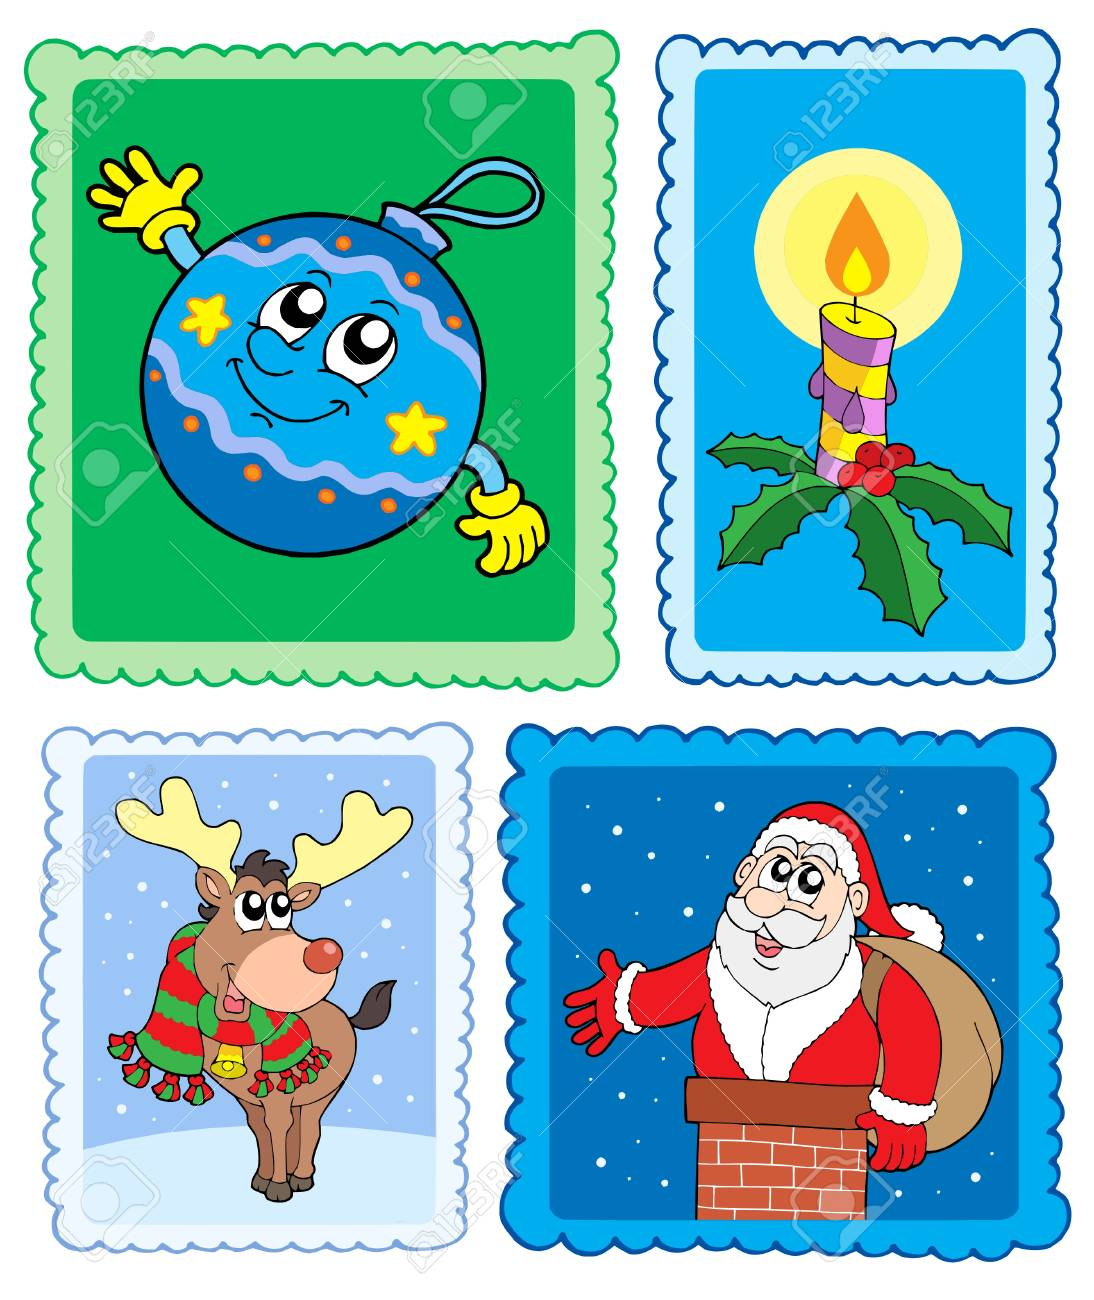 Christmas post stamps collection - vector illustration. Stock Vector - 3798921